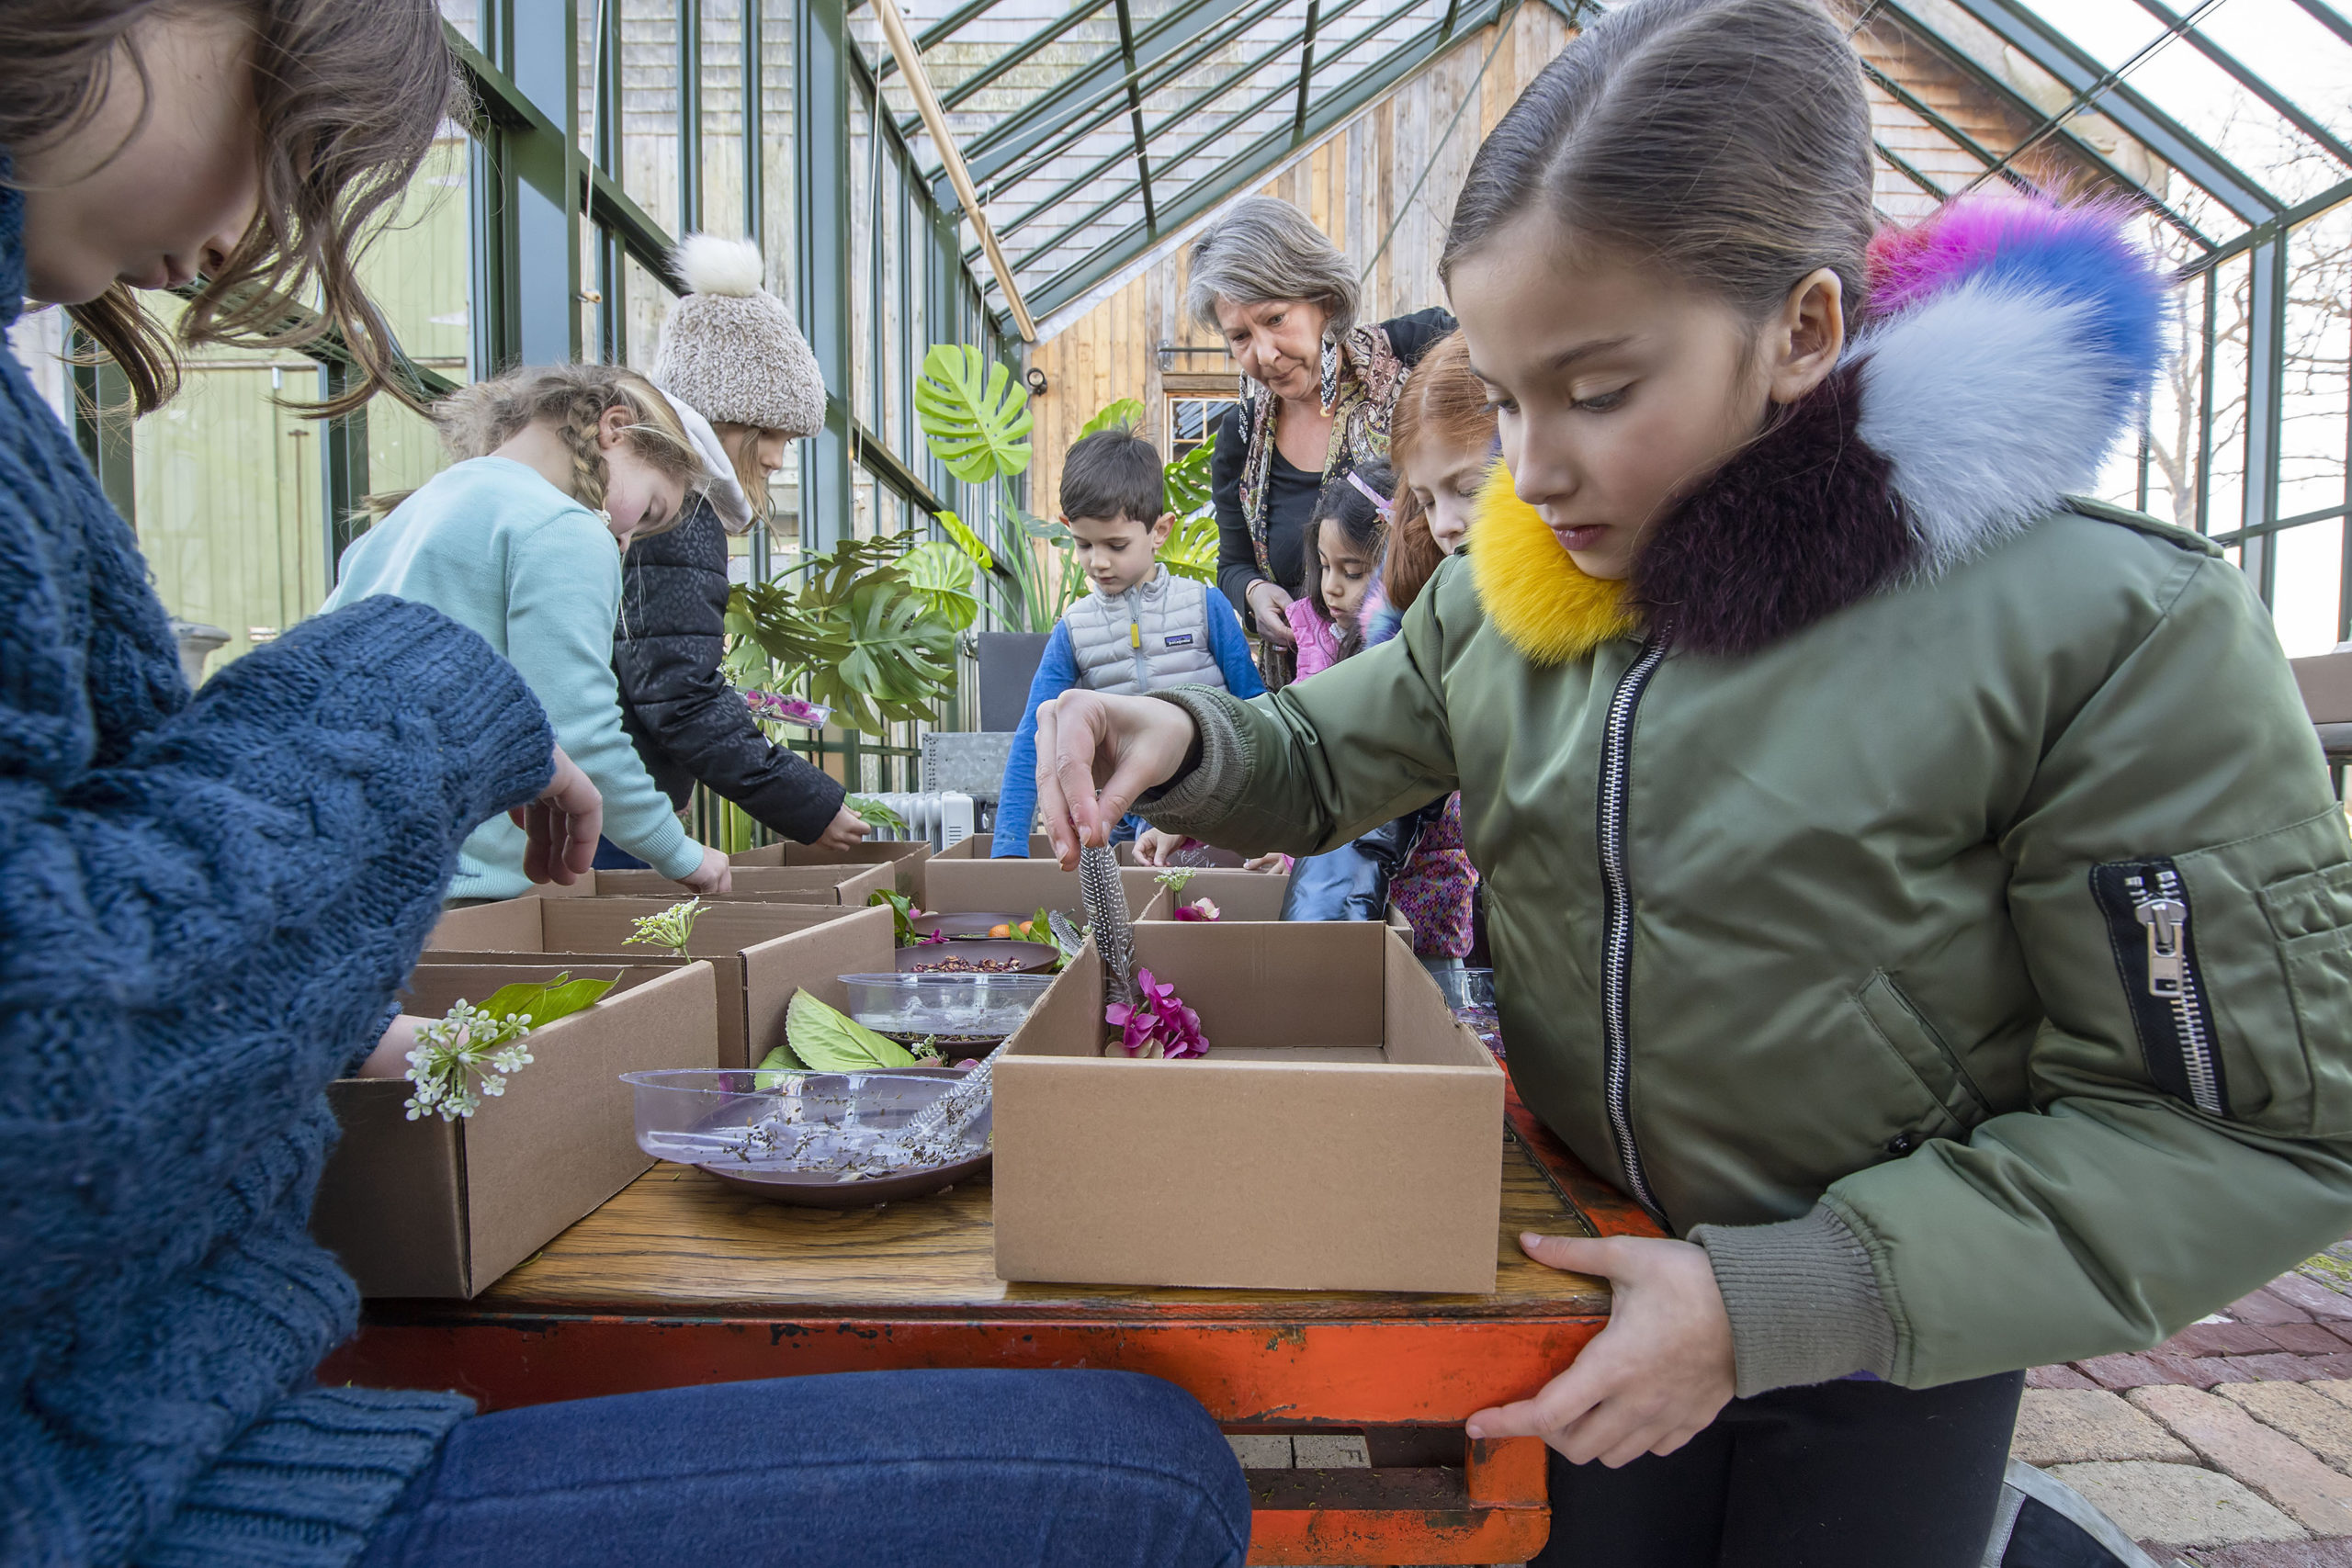 Sarah Shepard of Marders Nursery guides a group of children on how to create a Fairy Garden in a box at Marders Nursery on Saturday afternoon.   MICHAEL HELLER